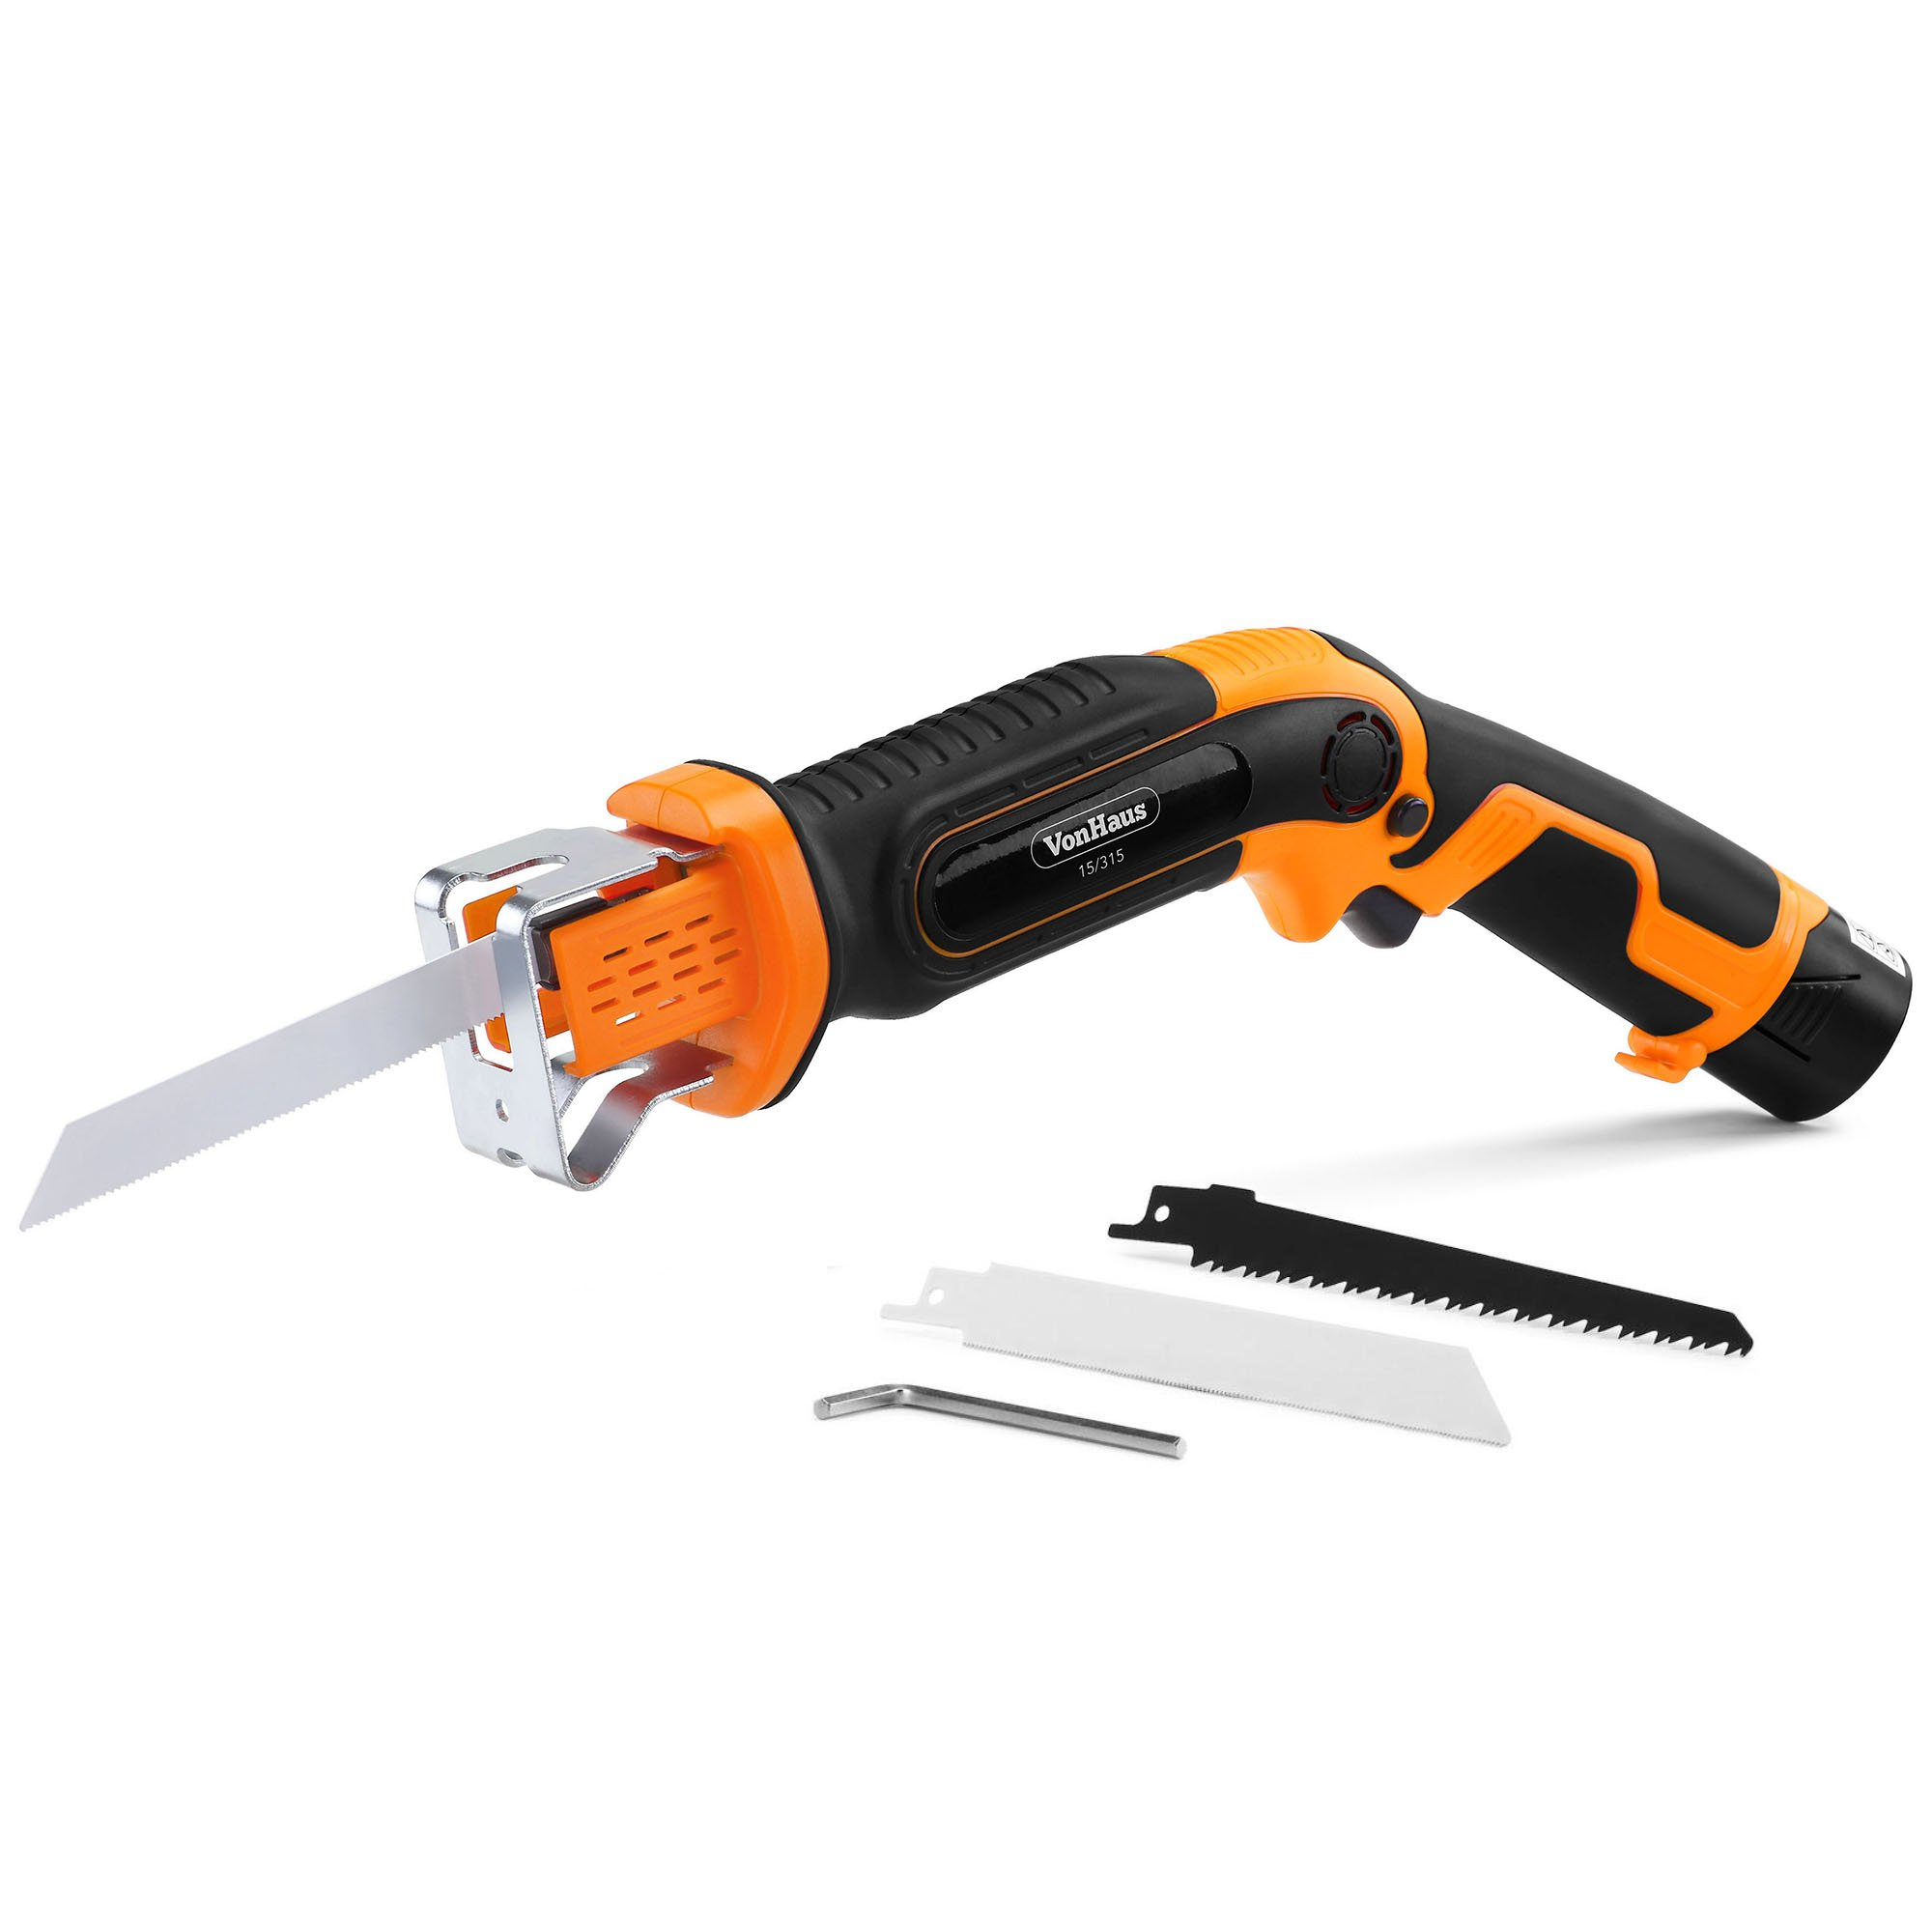 VonHaus 10.8V Electric Cordless Compact Garden Outdoor Pruning Saw 1/2 Cutting Length - Cut Through Branches, Wood, Plasterboard & Soft Metals - Includes 3 Spare Interchangeable Blades